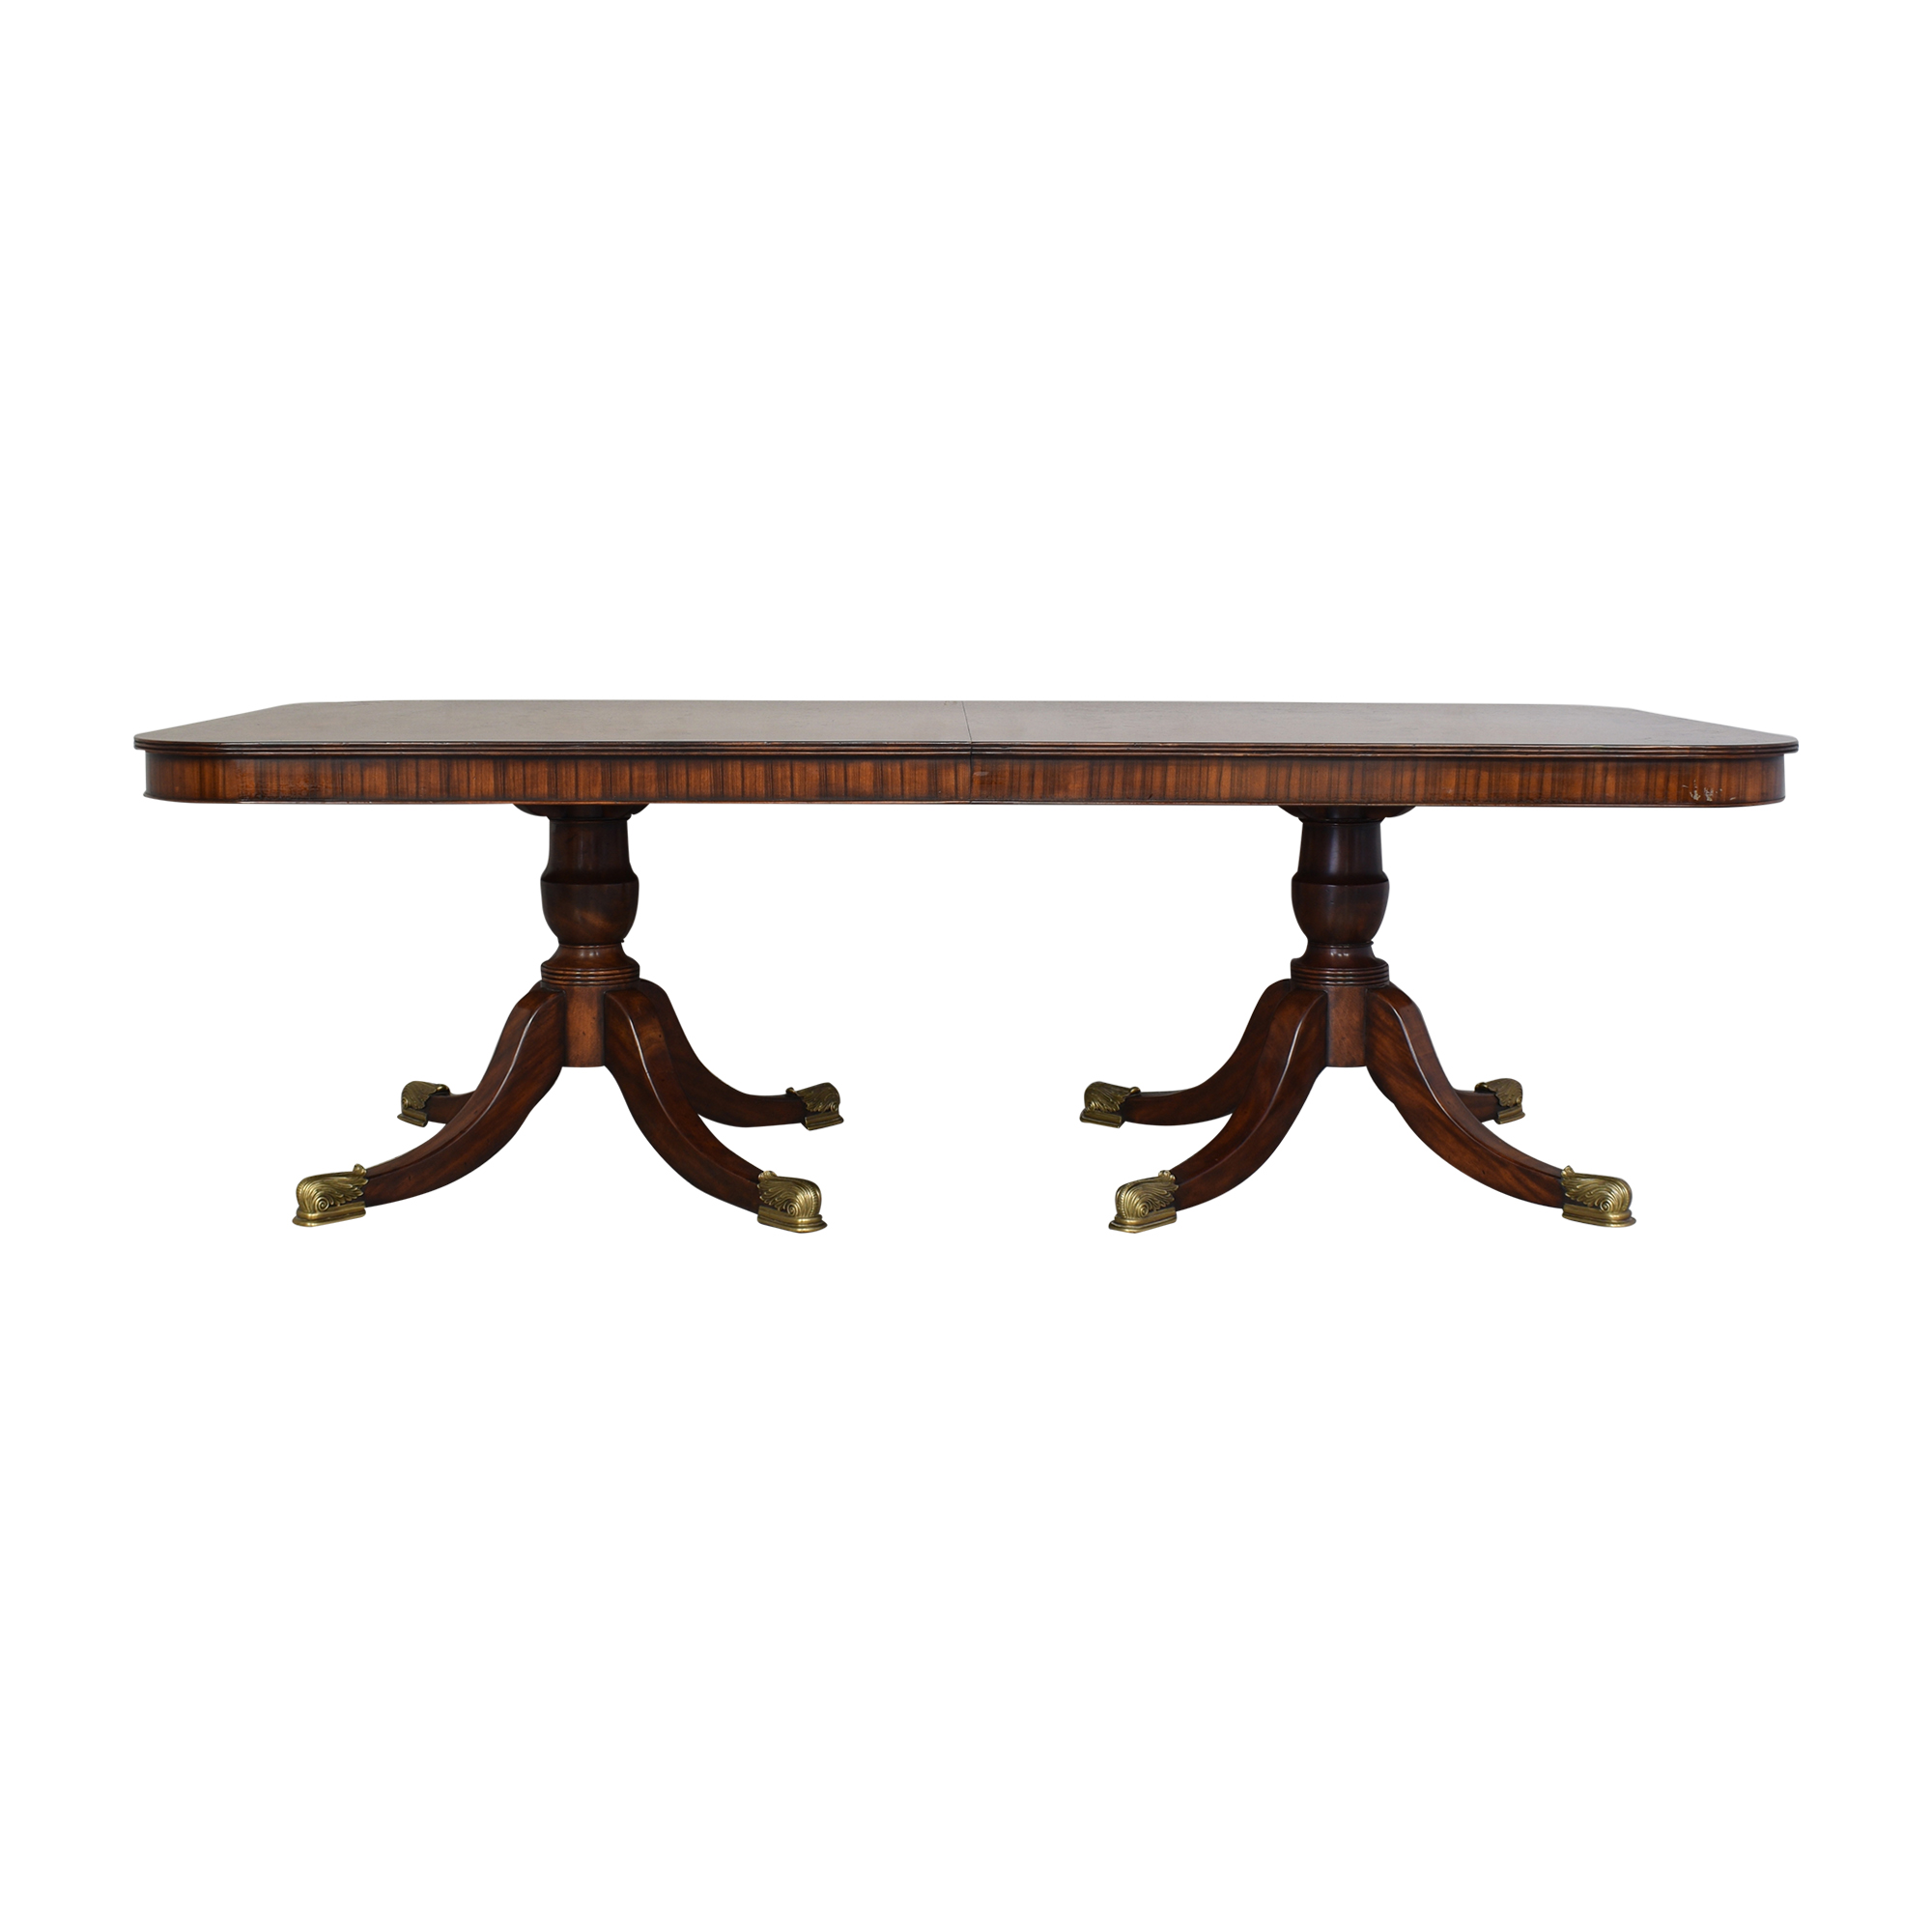 Theodore Alexander Theodore Alexander Althorp Living History Sunderland Dining Table nyc